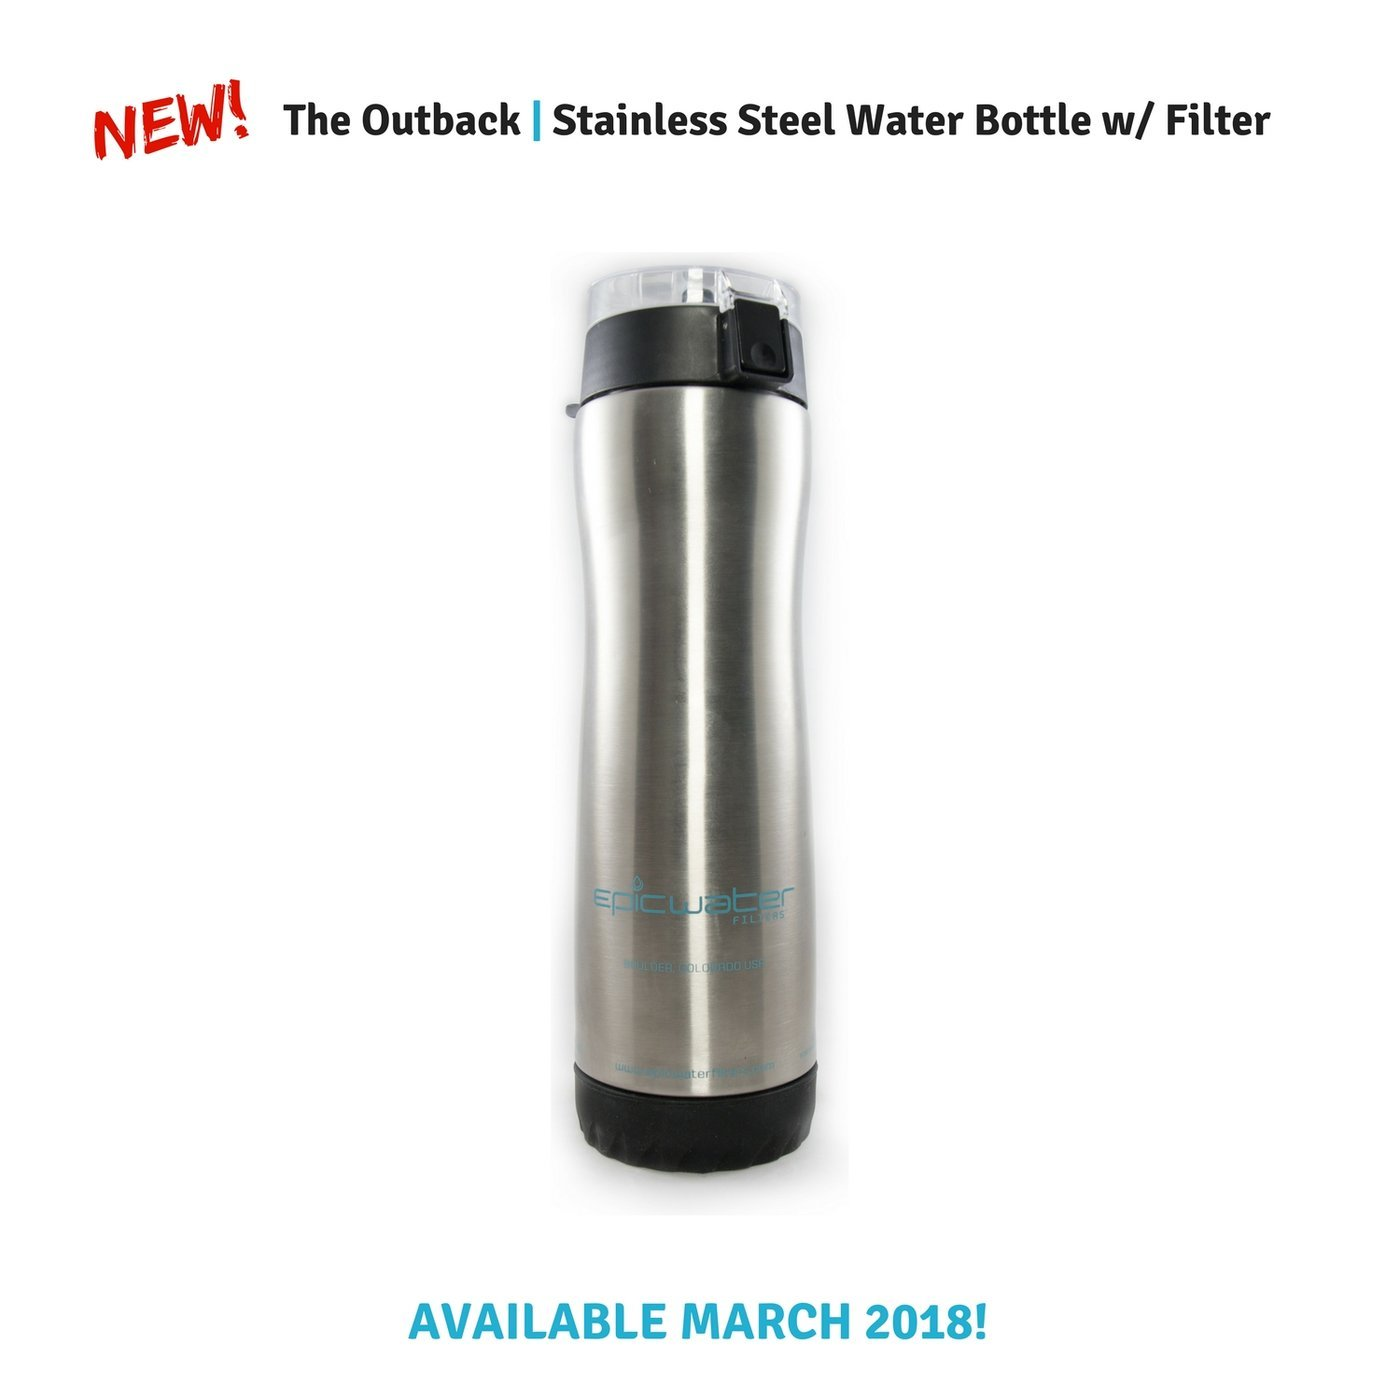 Epic Stainless Steel Water Filtration Bottle with 1 Everyday Filter | Removes Lead, Arsenic, Fluoride TTHM, PFOA/PFOS and 65+ More Tap Water Contaminants | 800mL | Silver Epic Life Inc.